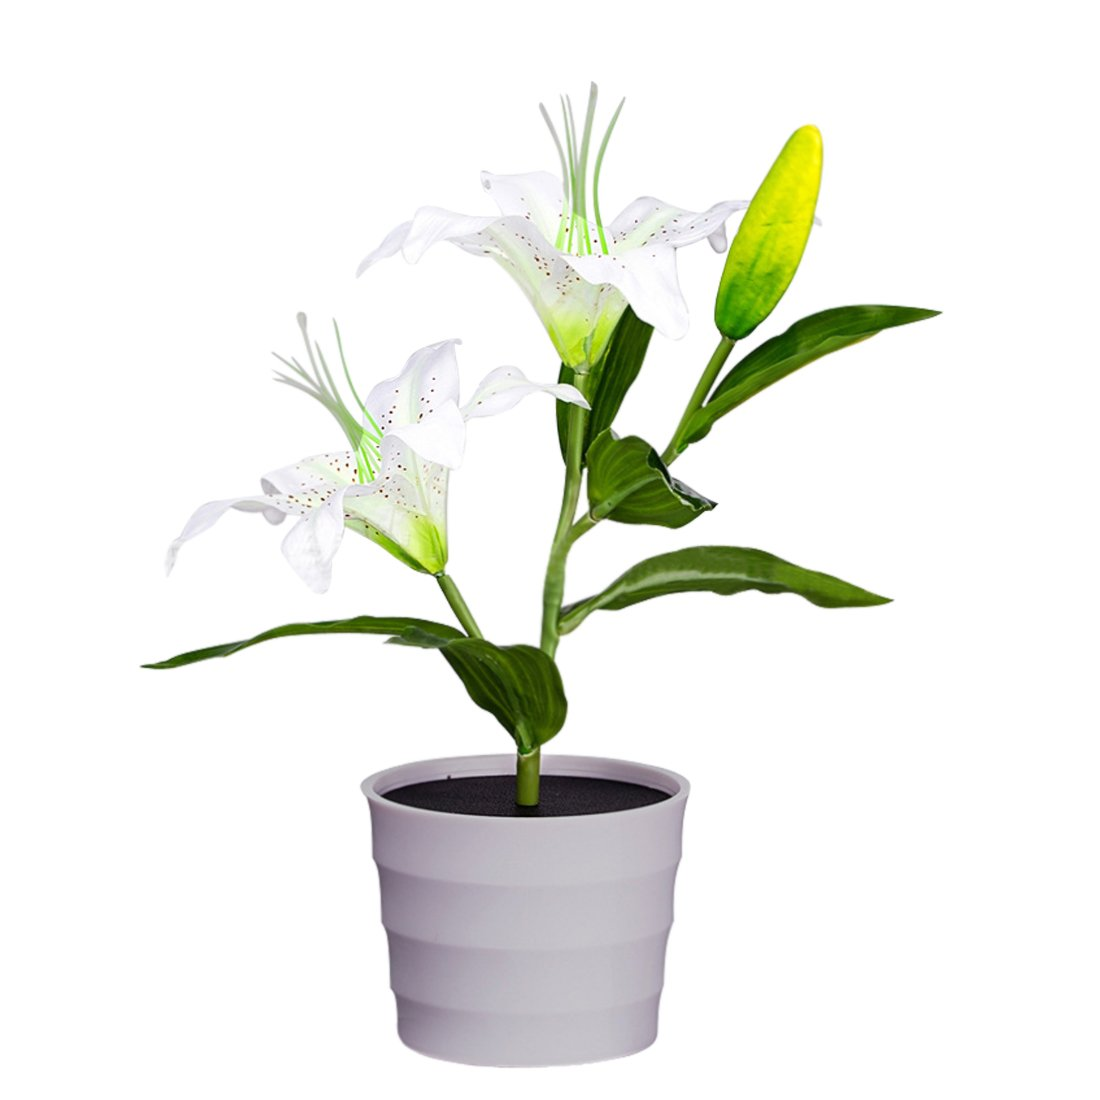 Cheap Penfly Led Wireless Solar Power Decorative Artificial Lily